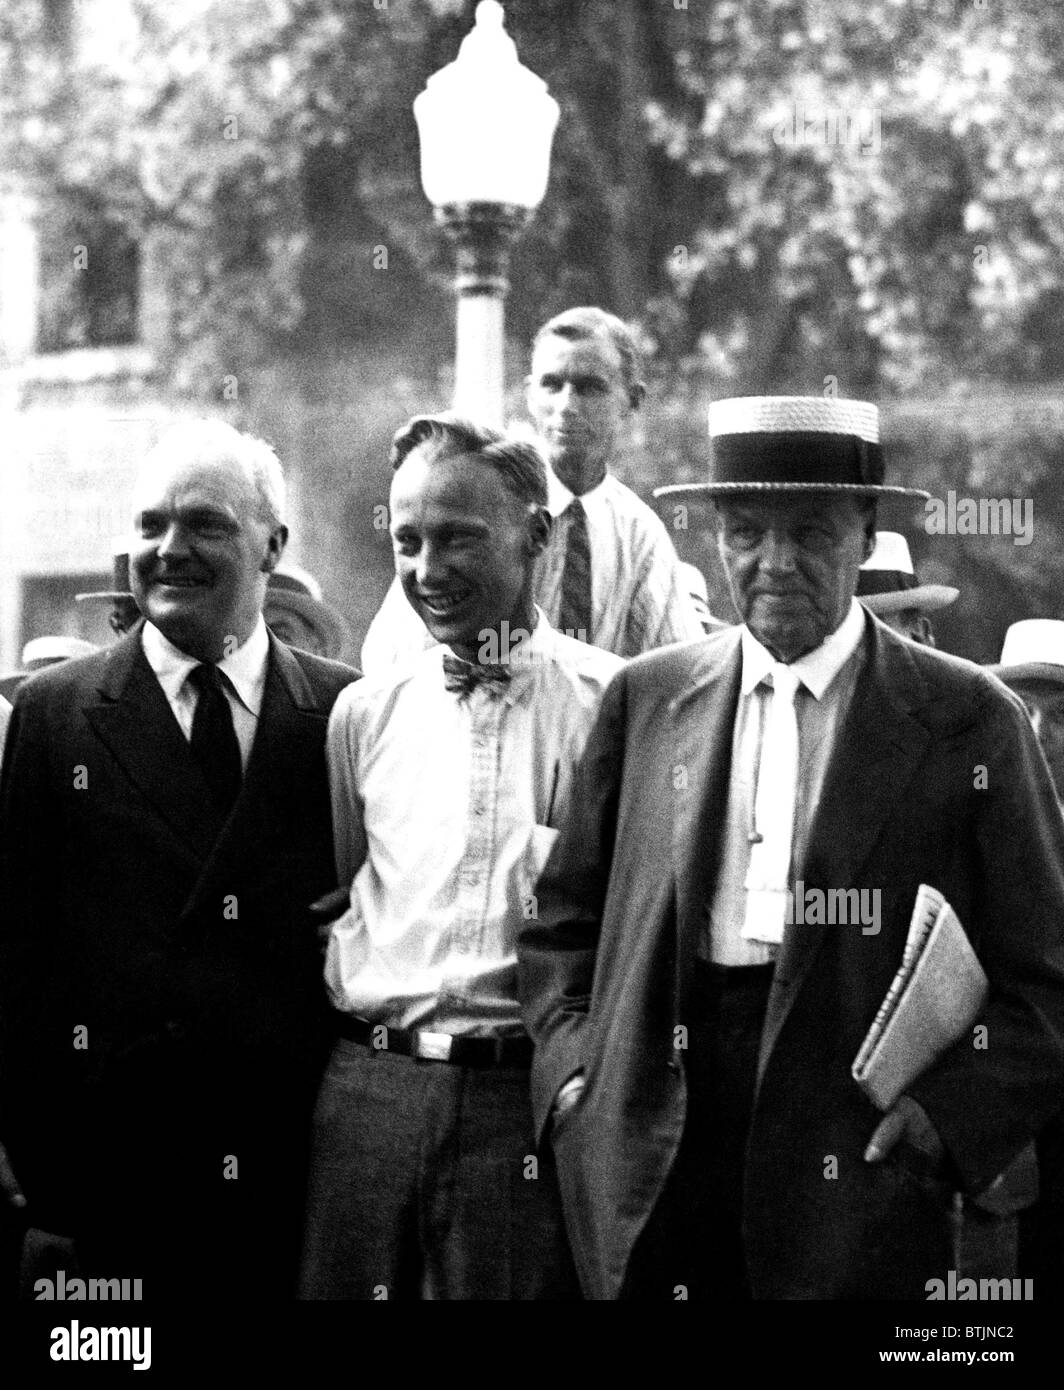 John T. Scopes (c) in 1925 at his famous 'Monkey Trial'. He is accompanied by his defence team Dudley Field - Stock Image